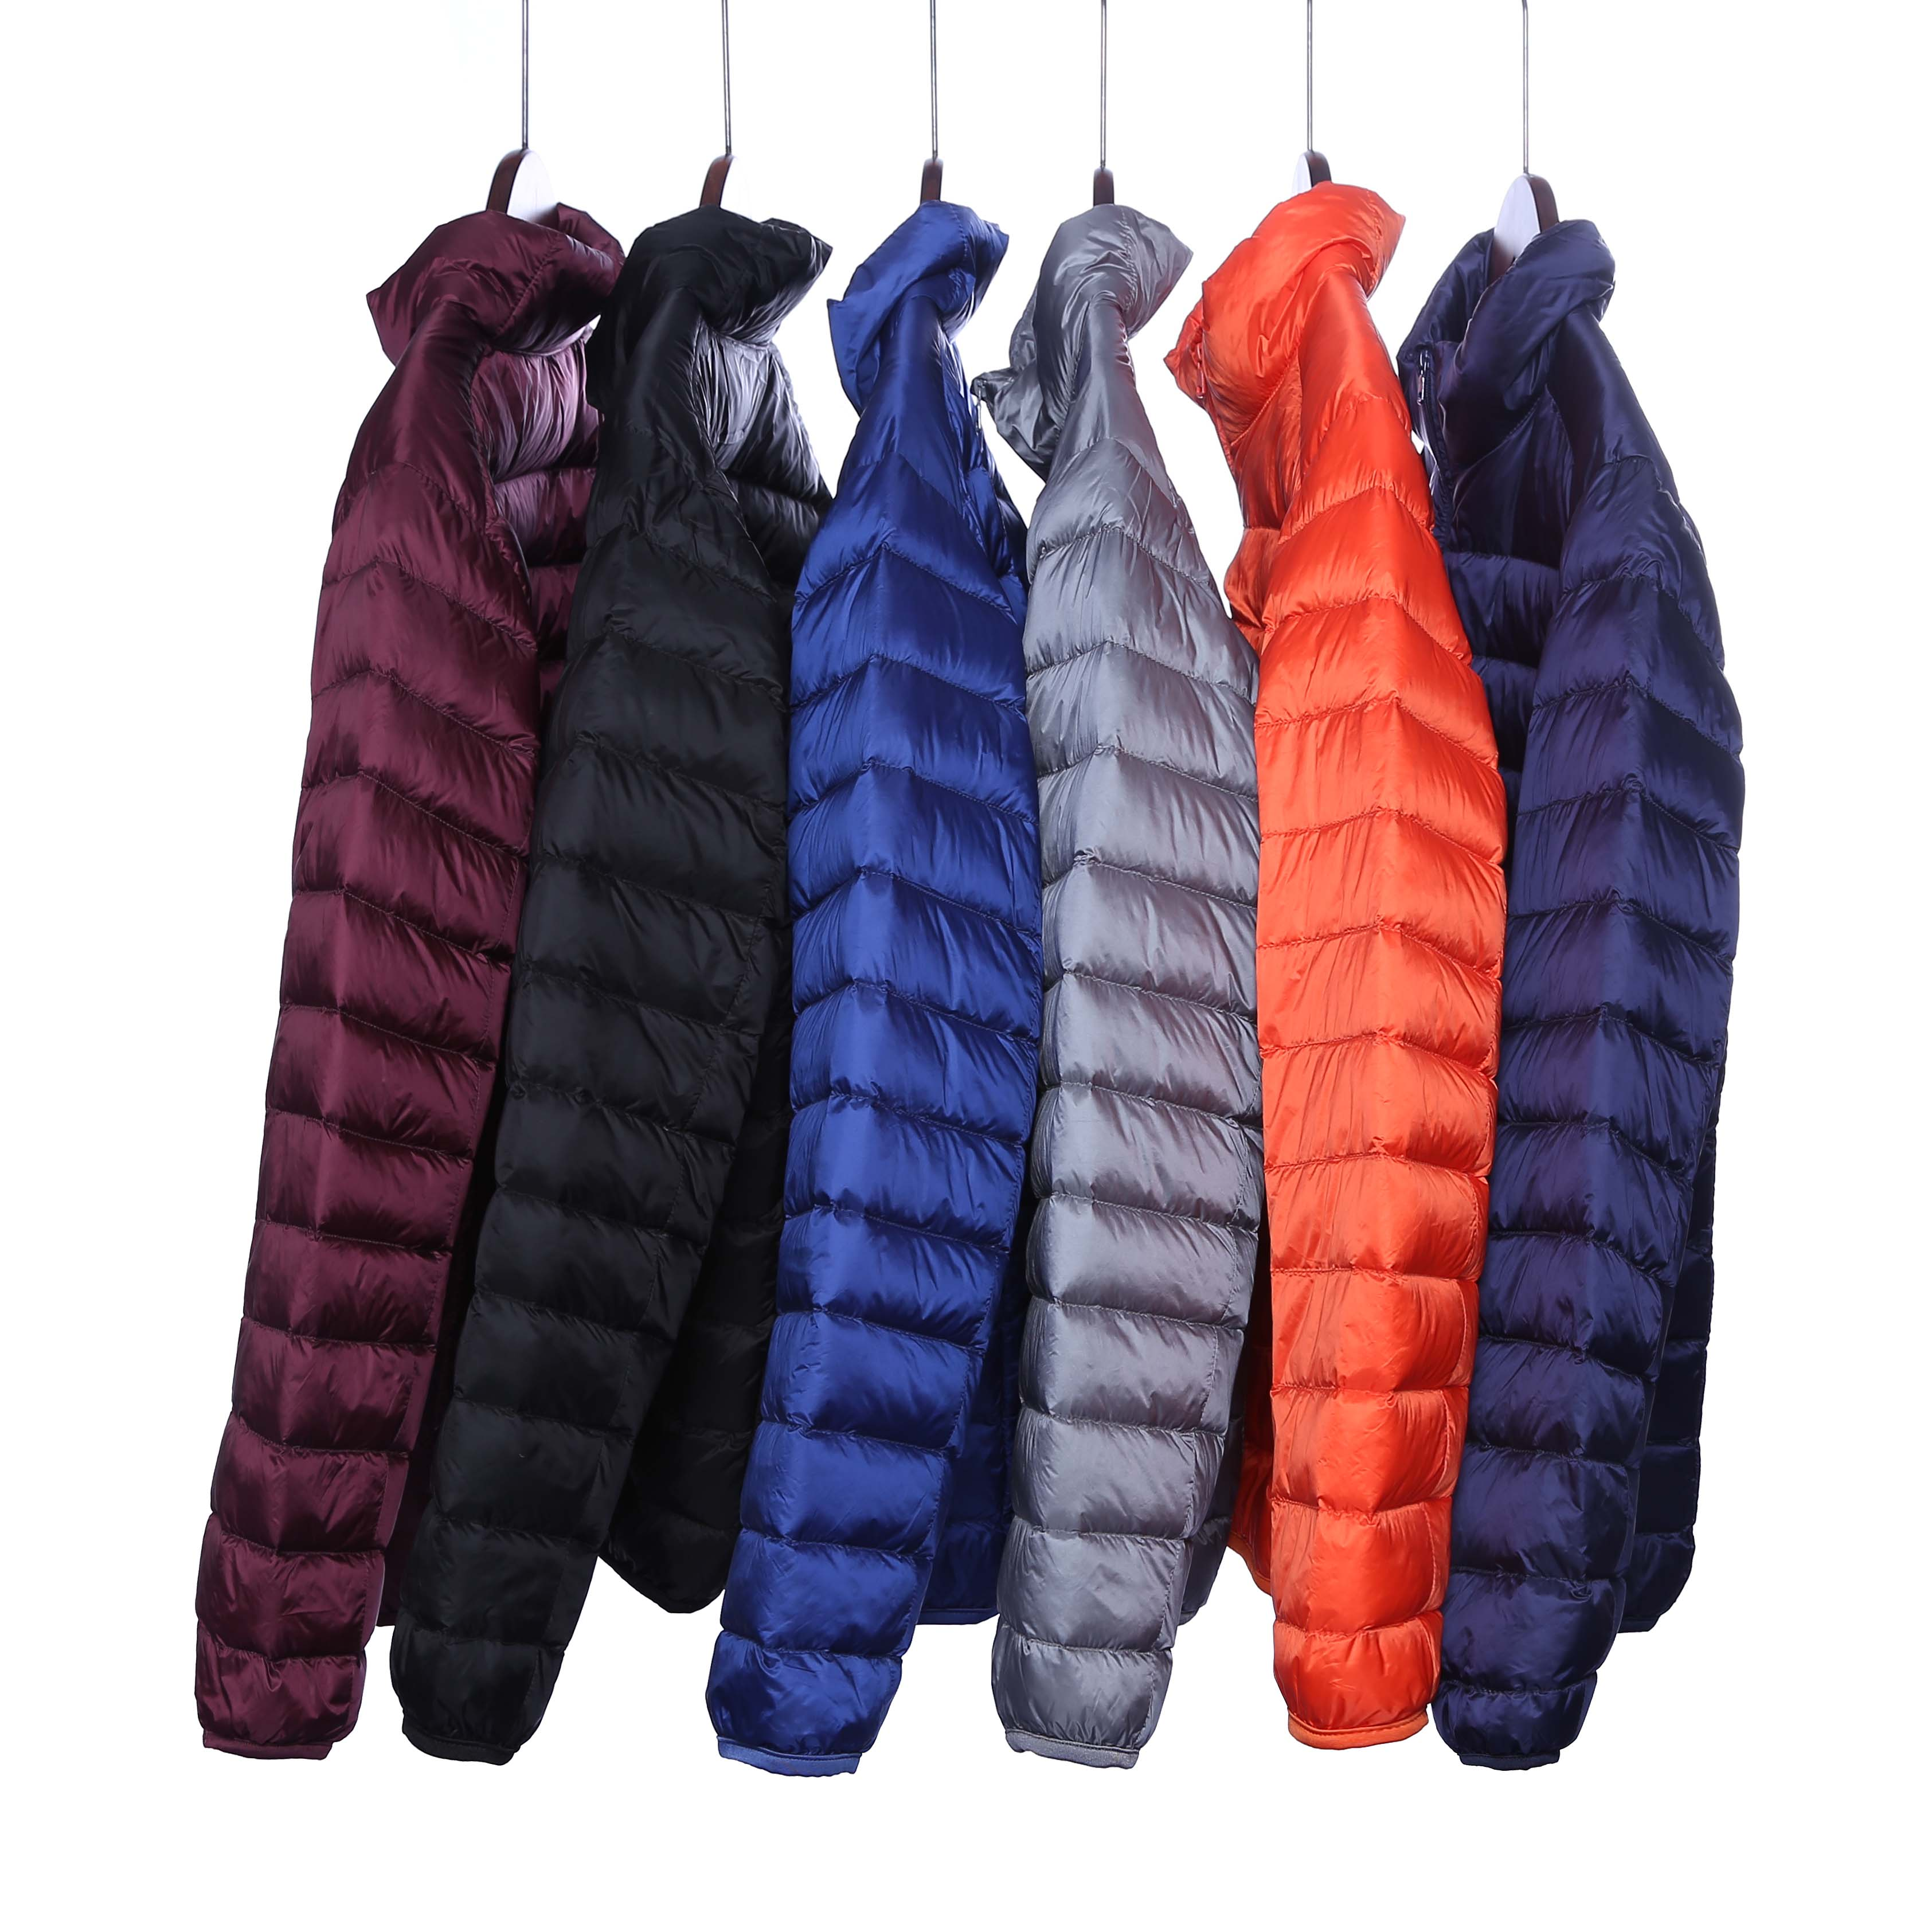 Winter factory clearance broken size lightweight portable down jacket mens stand collar hooded short warm leisure outdoor sports